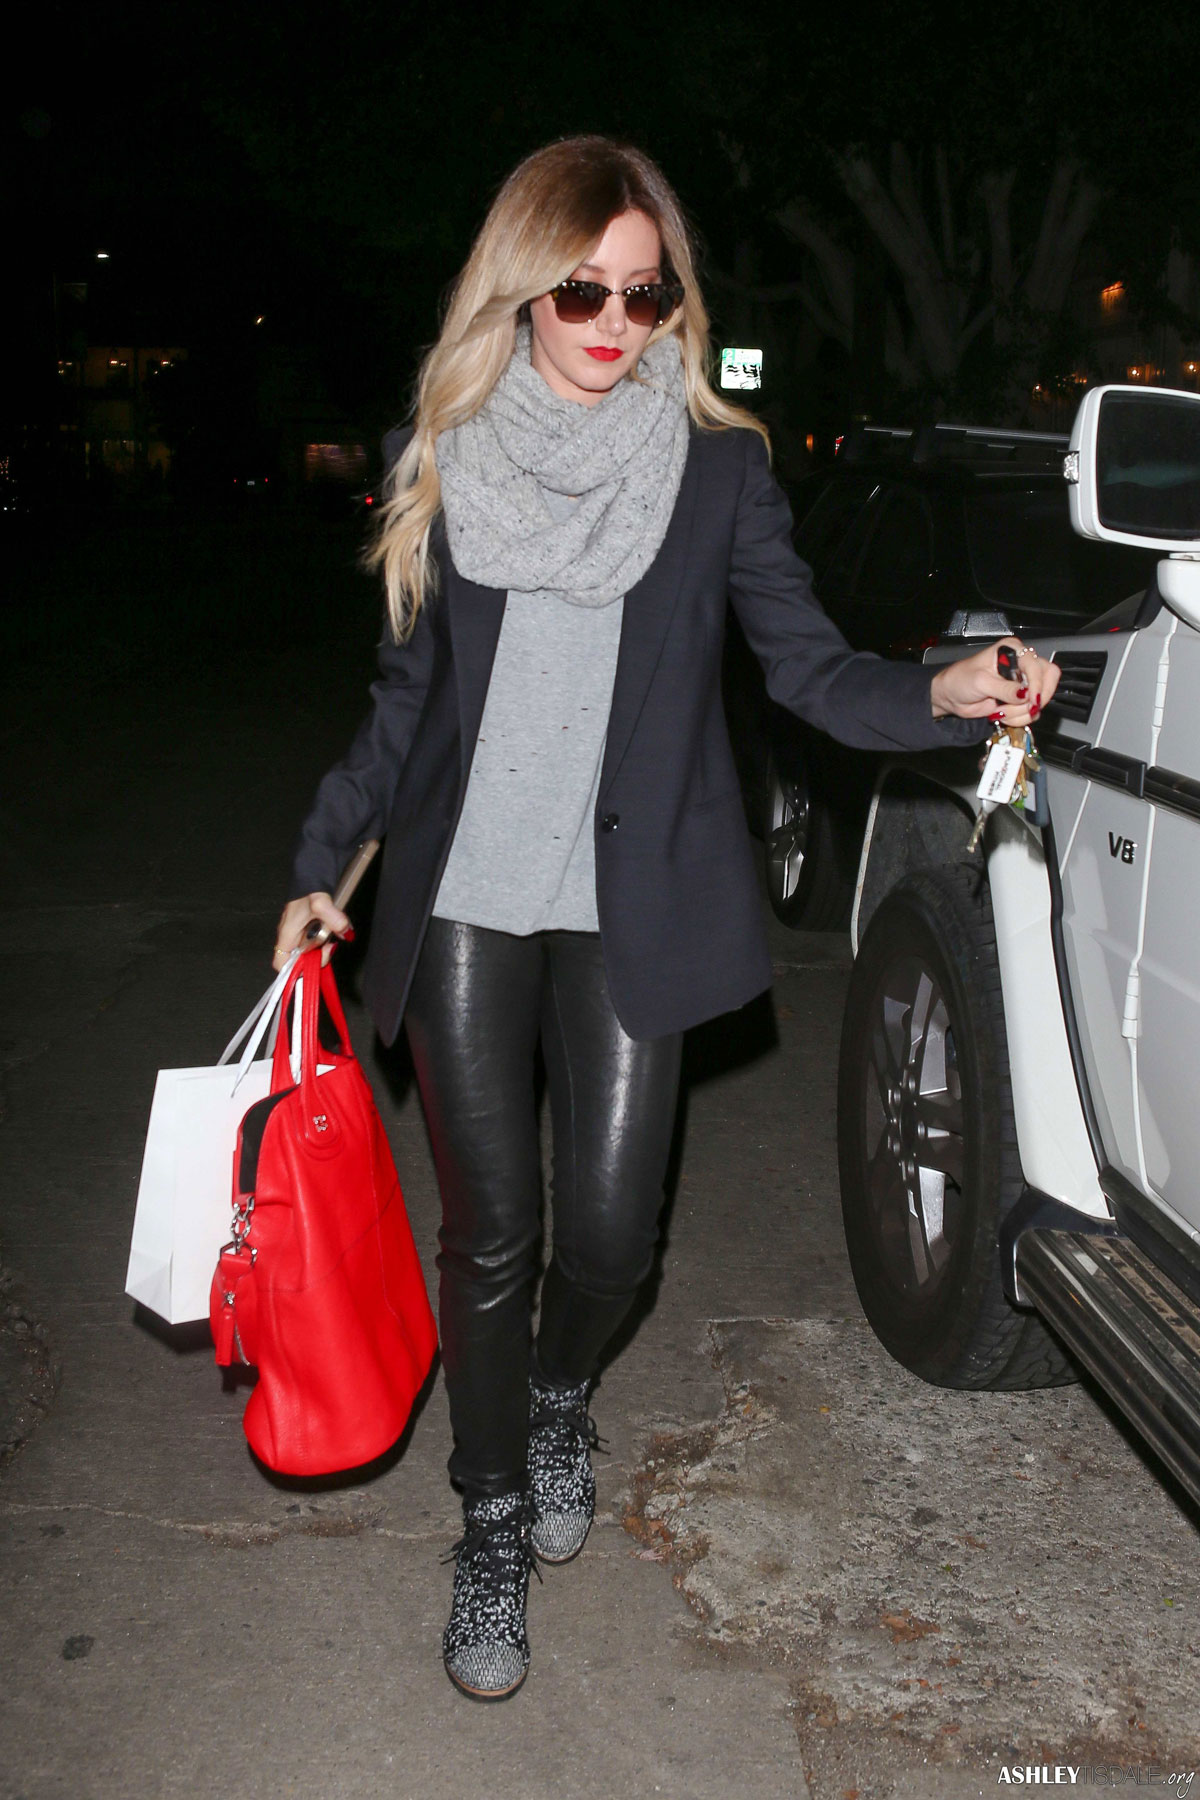 Ashley Tisdale was spotted on Friday night (December 5th) as she left the Nine Zero One Salon